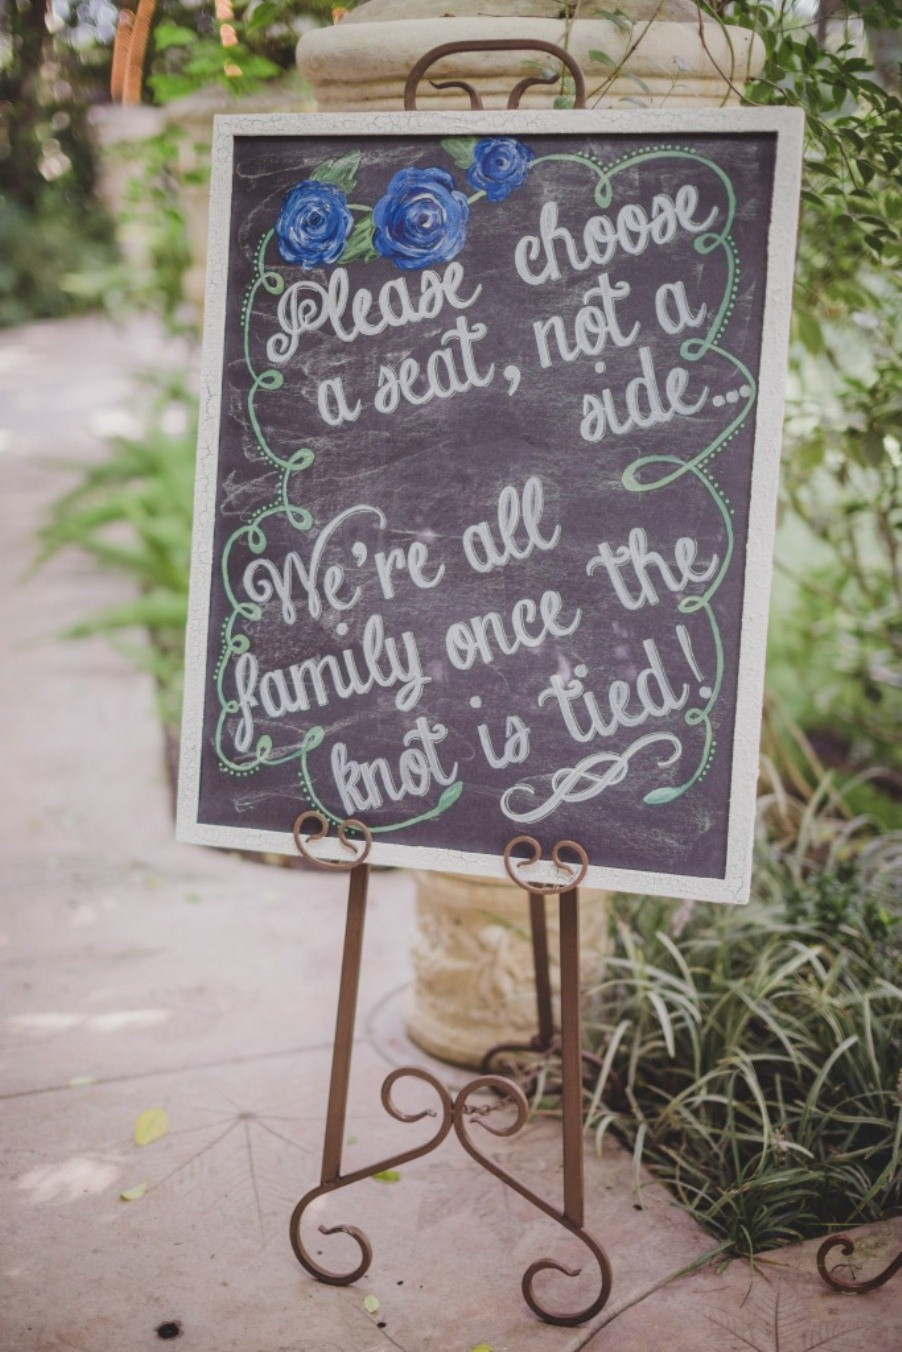 Best ideas about DIY Wedding Signage . Save or Pin DIY Chalkboard Wedding Signs A Simple Hack Miss Bizi Bee Now.